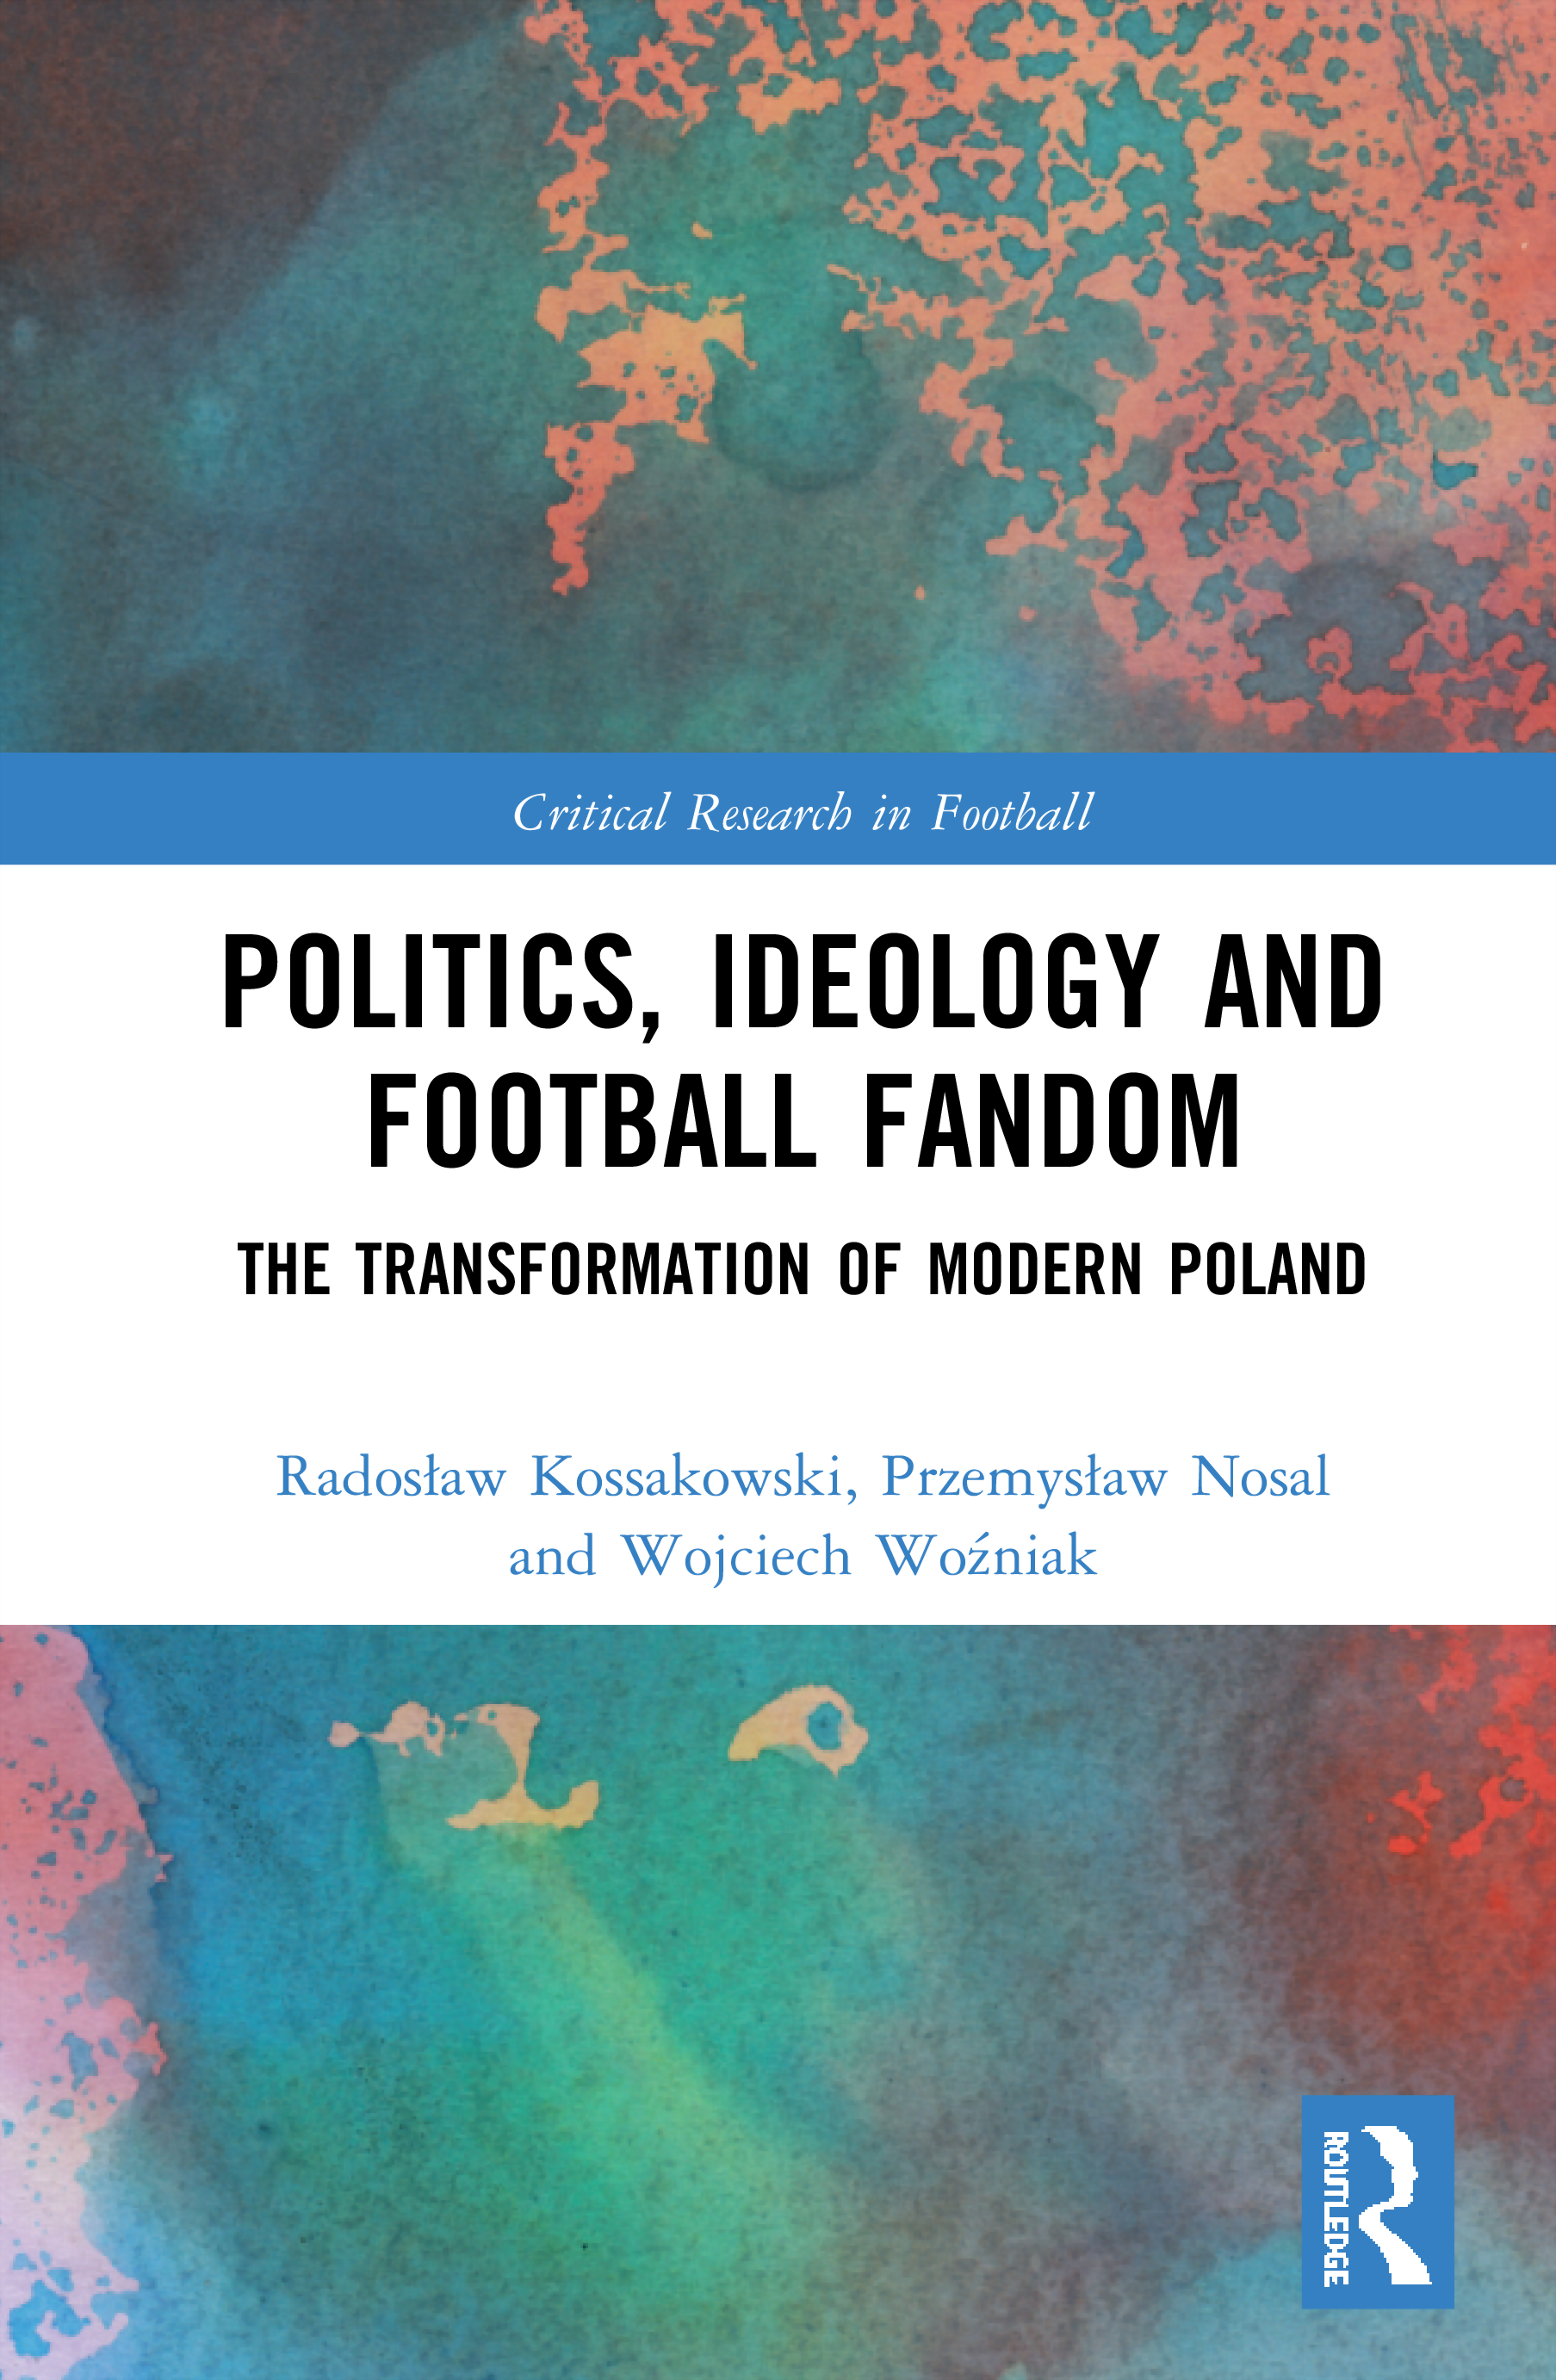 Politics, Ideology and Football Fandom: The Transformation of Modern Poland book cover